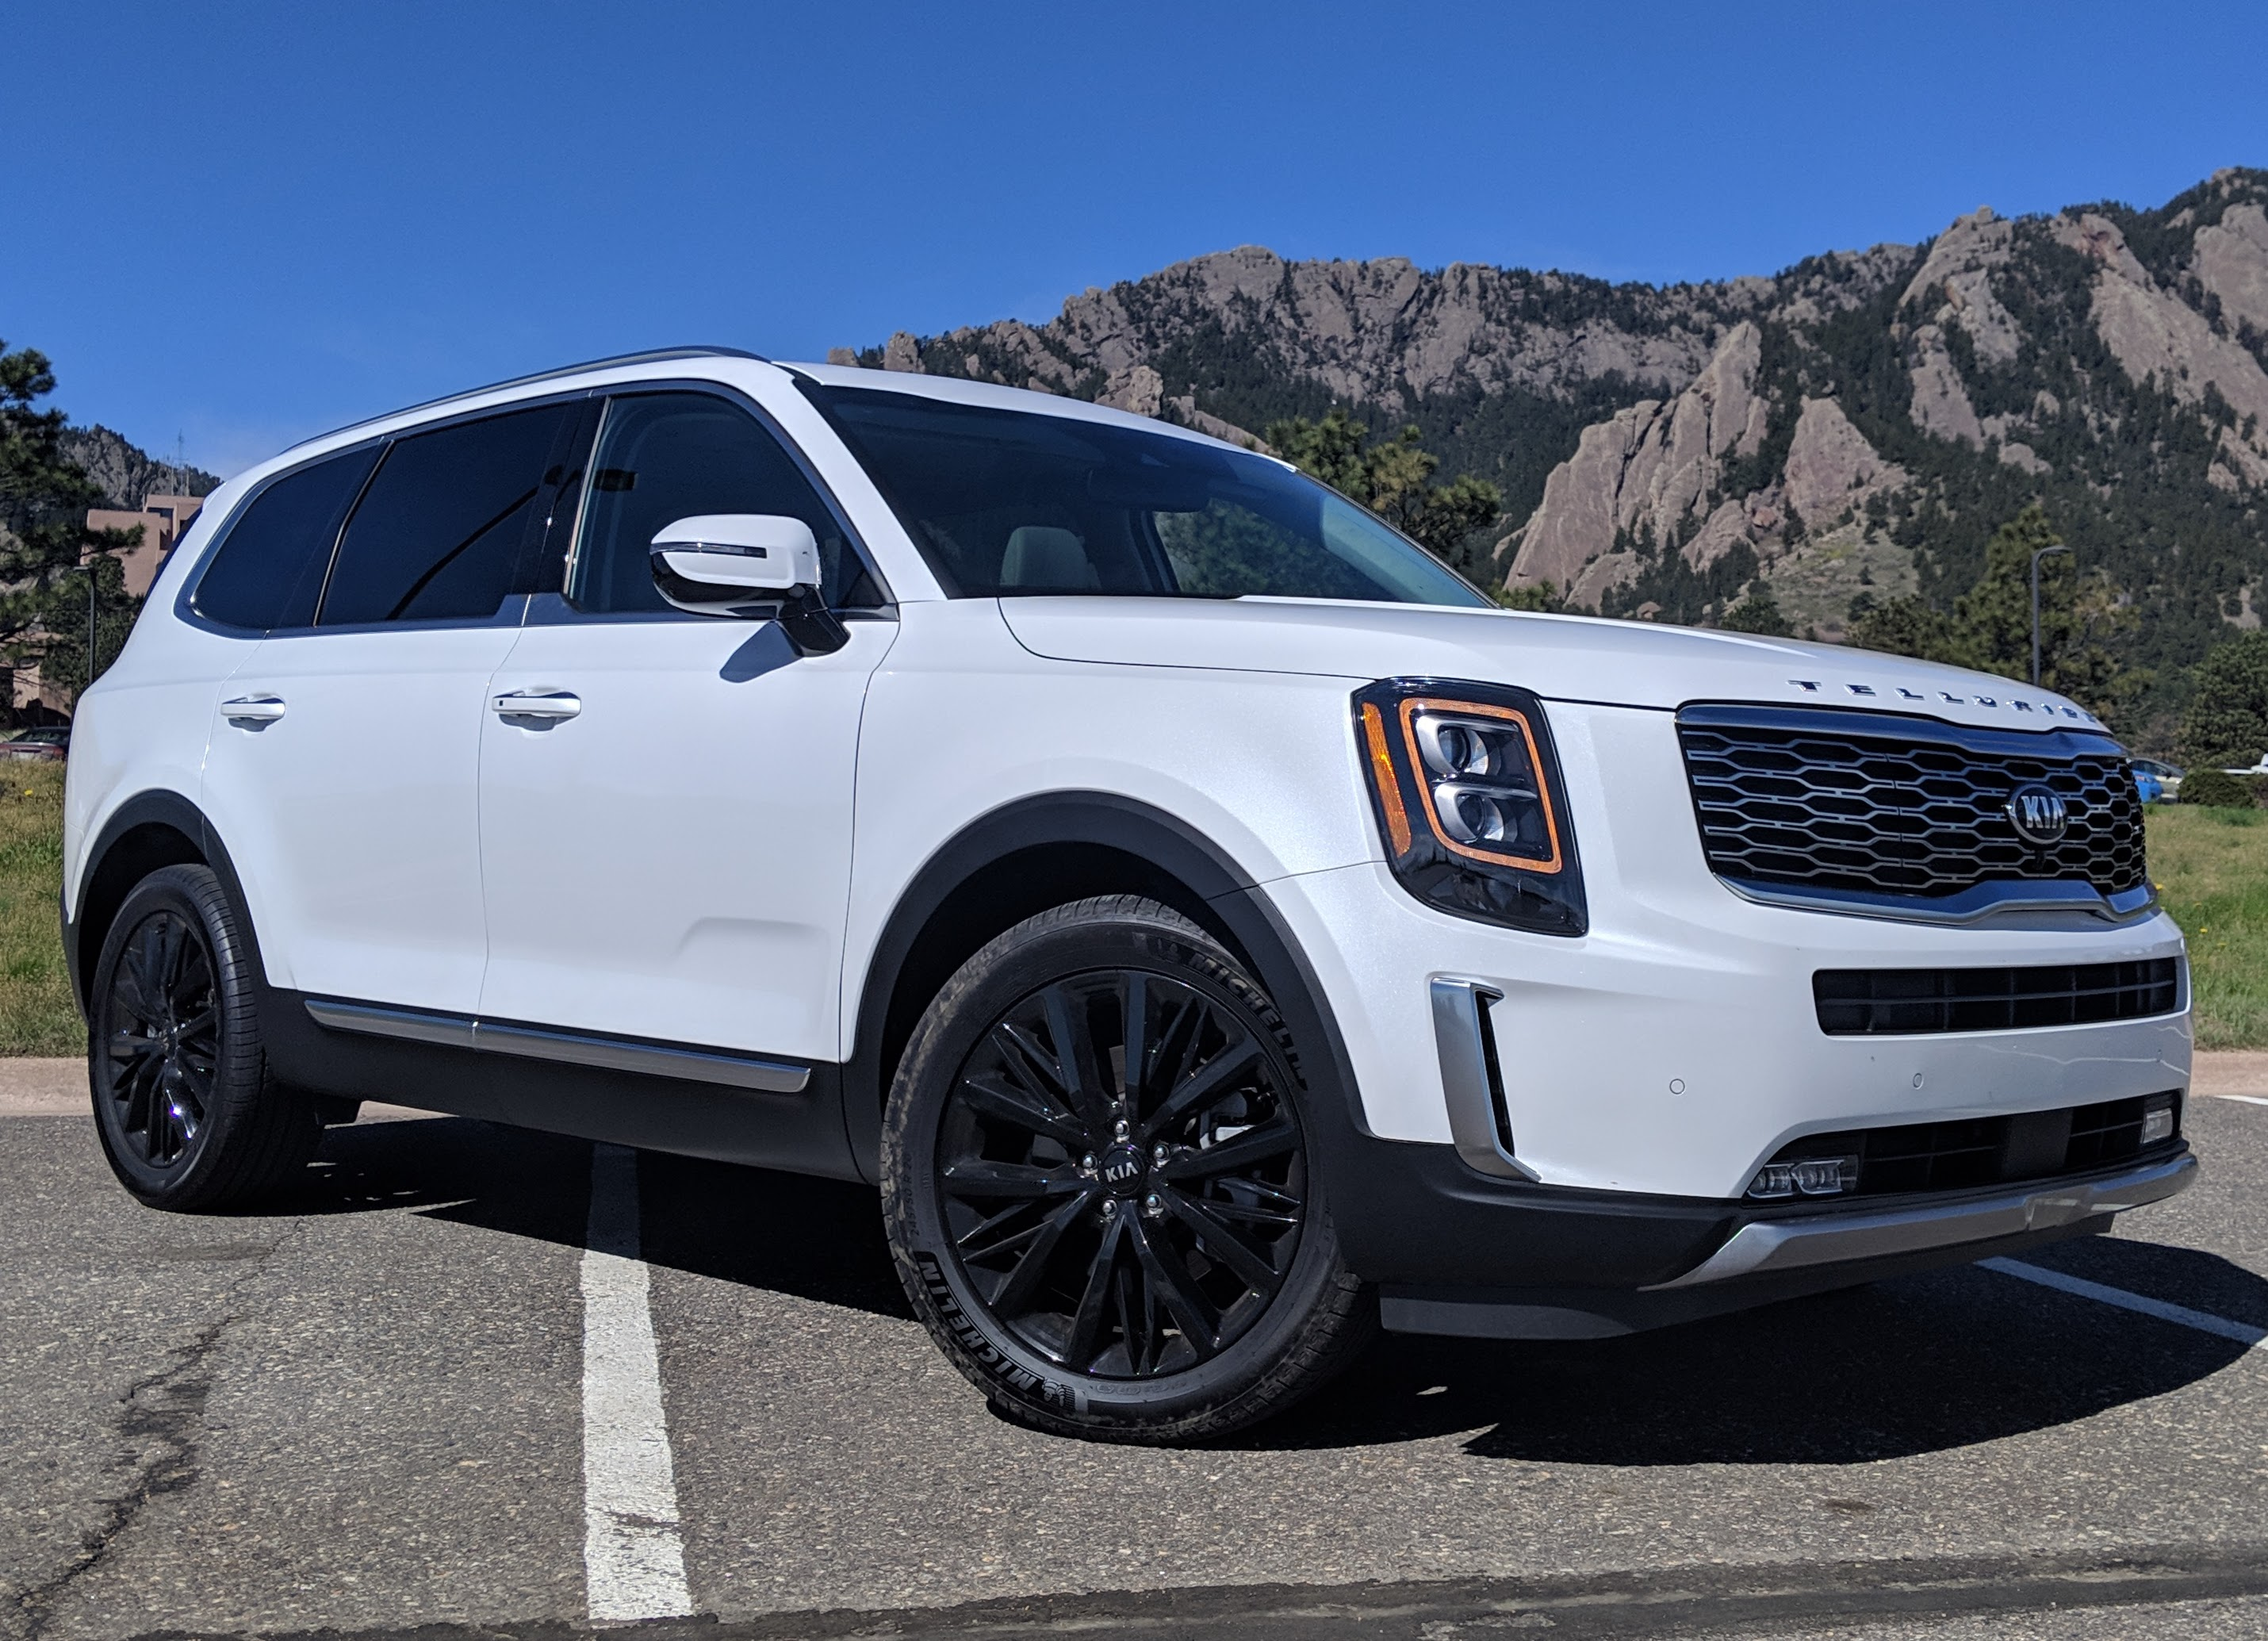 Suv With Captain Chairs 2020 Kia Telluride Review Maybe The Best Family Suv You Can Buy